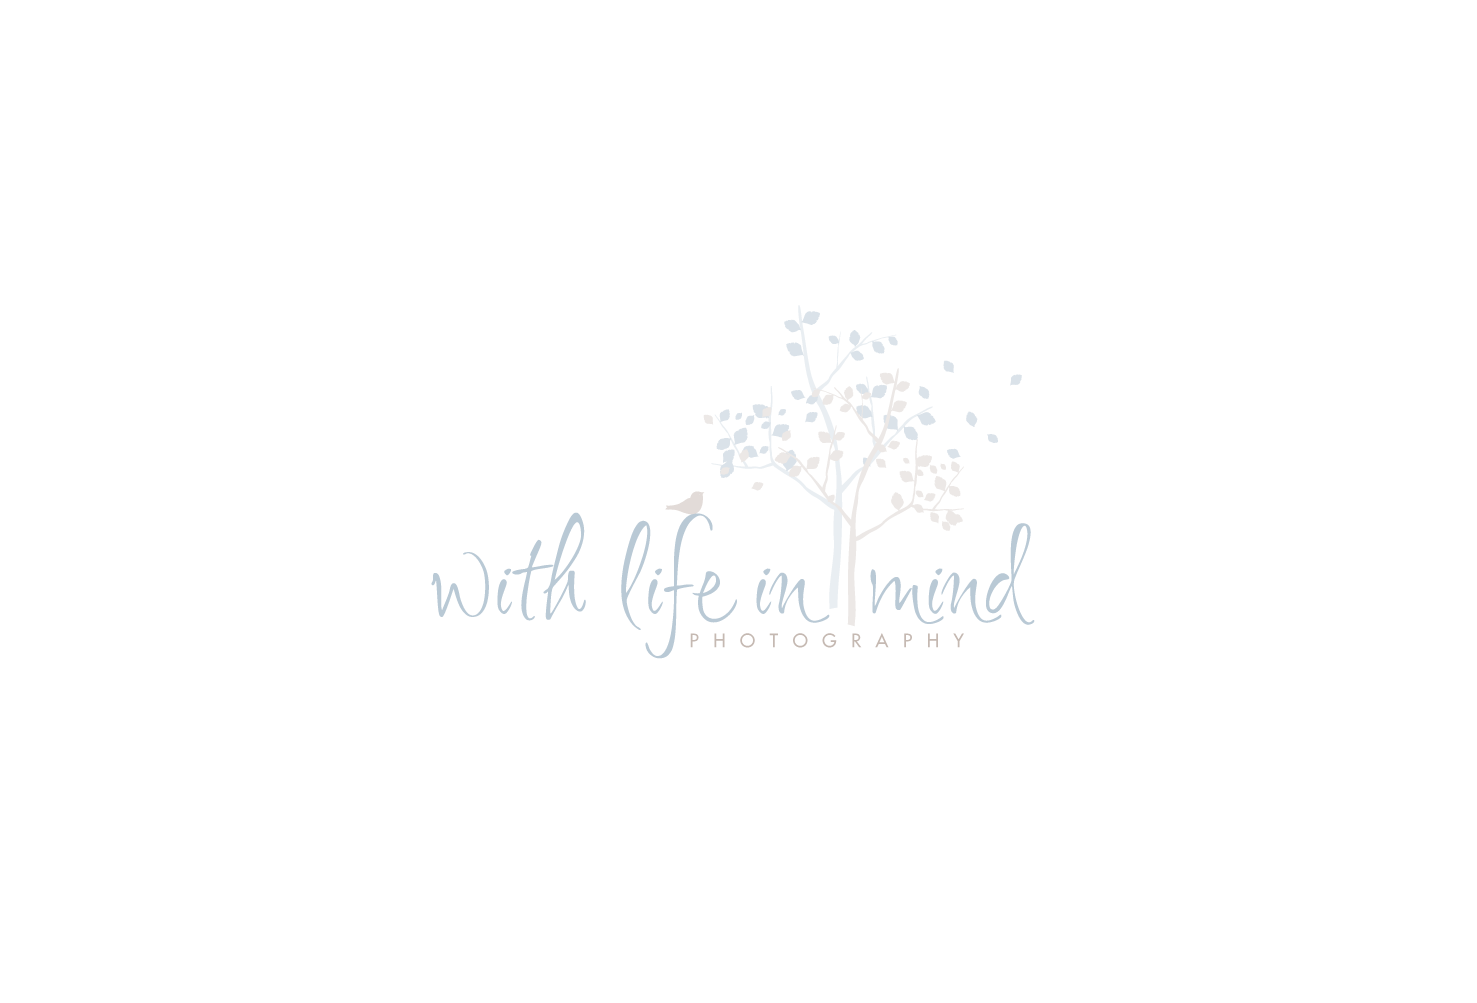 Create a winning design for With Life In Mind Photography